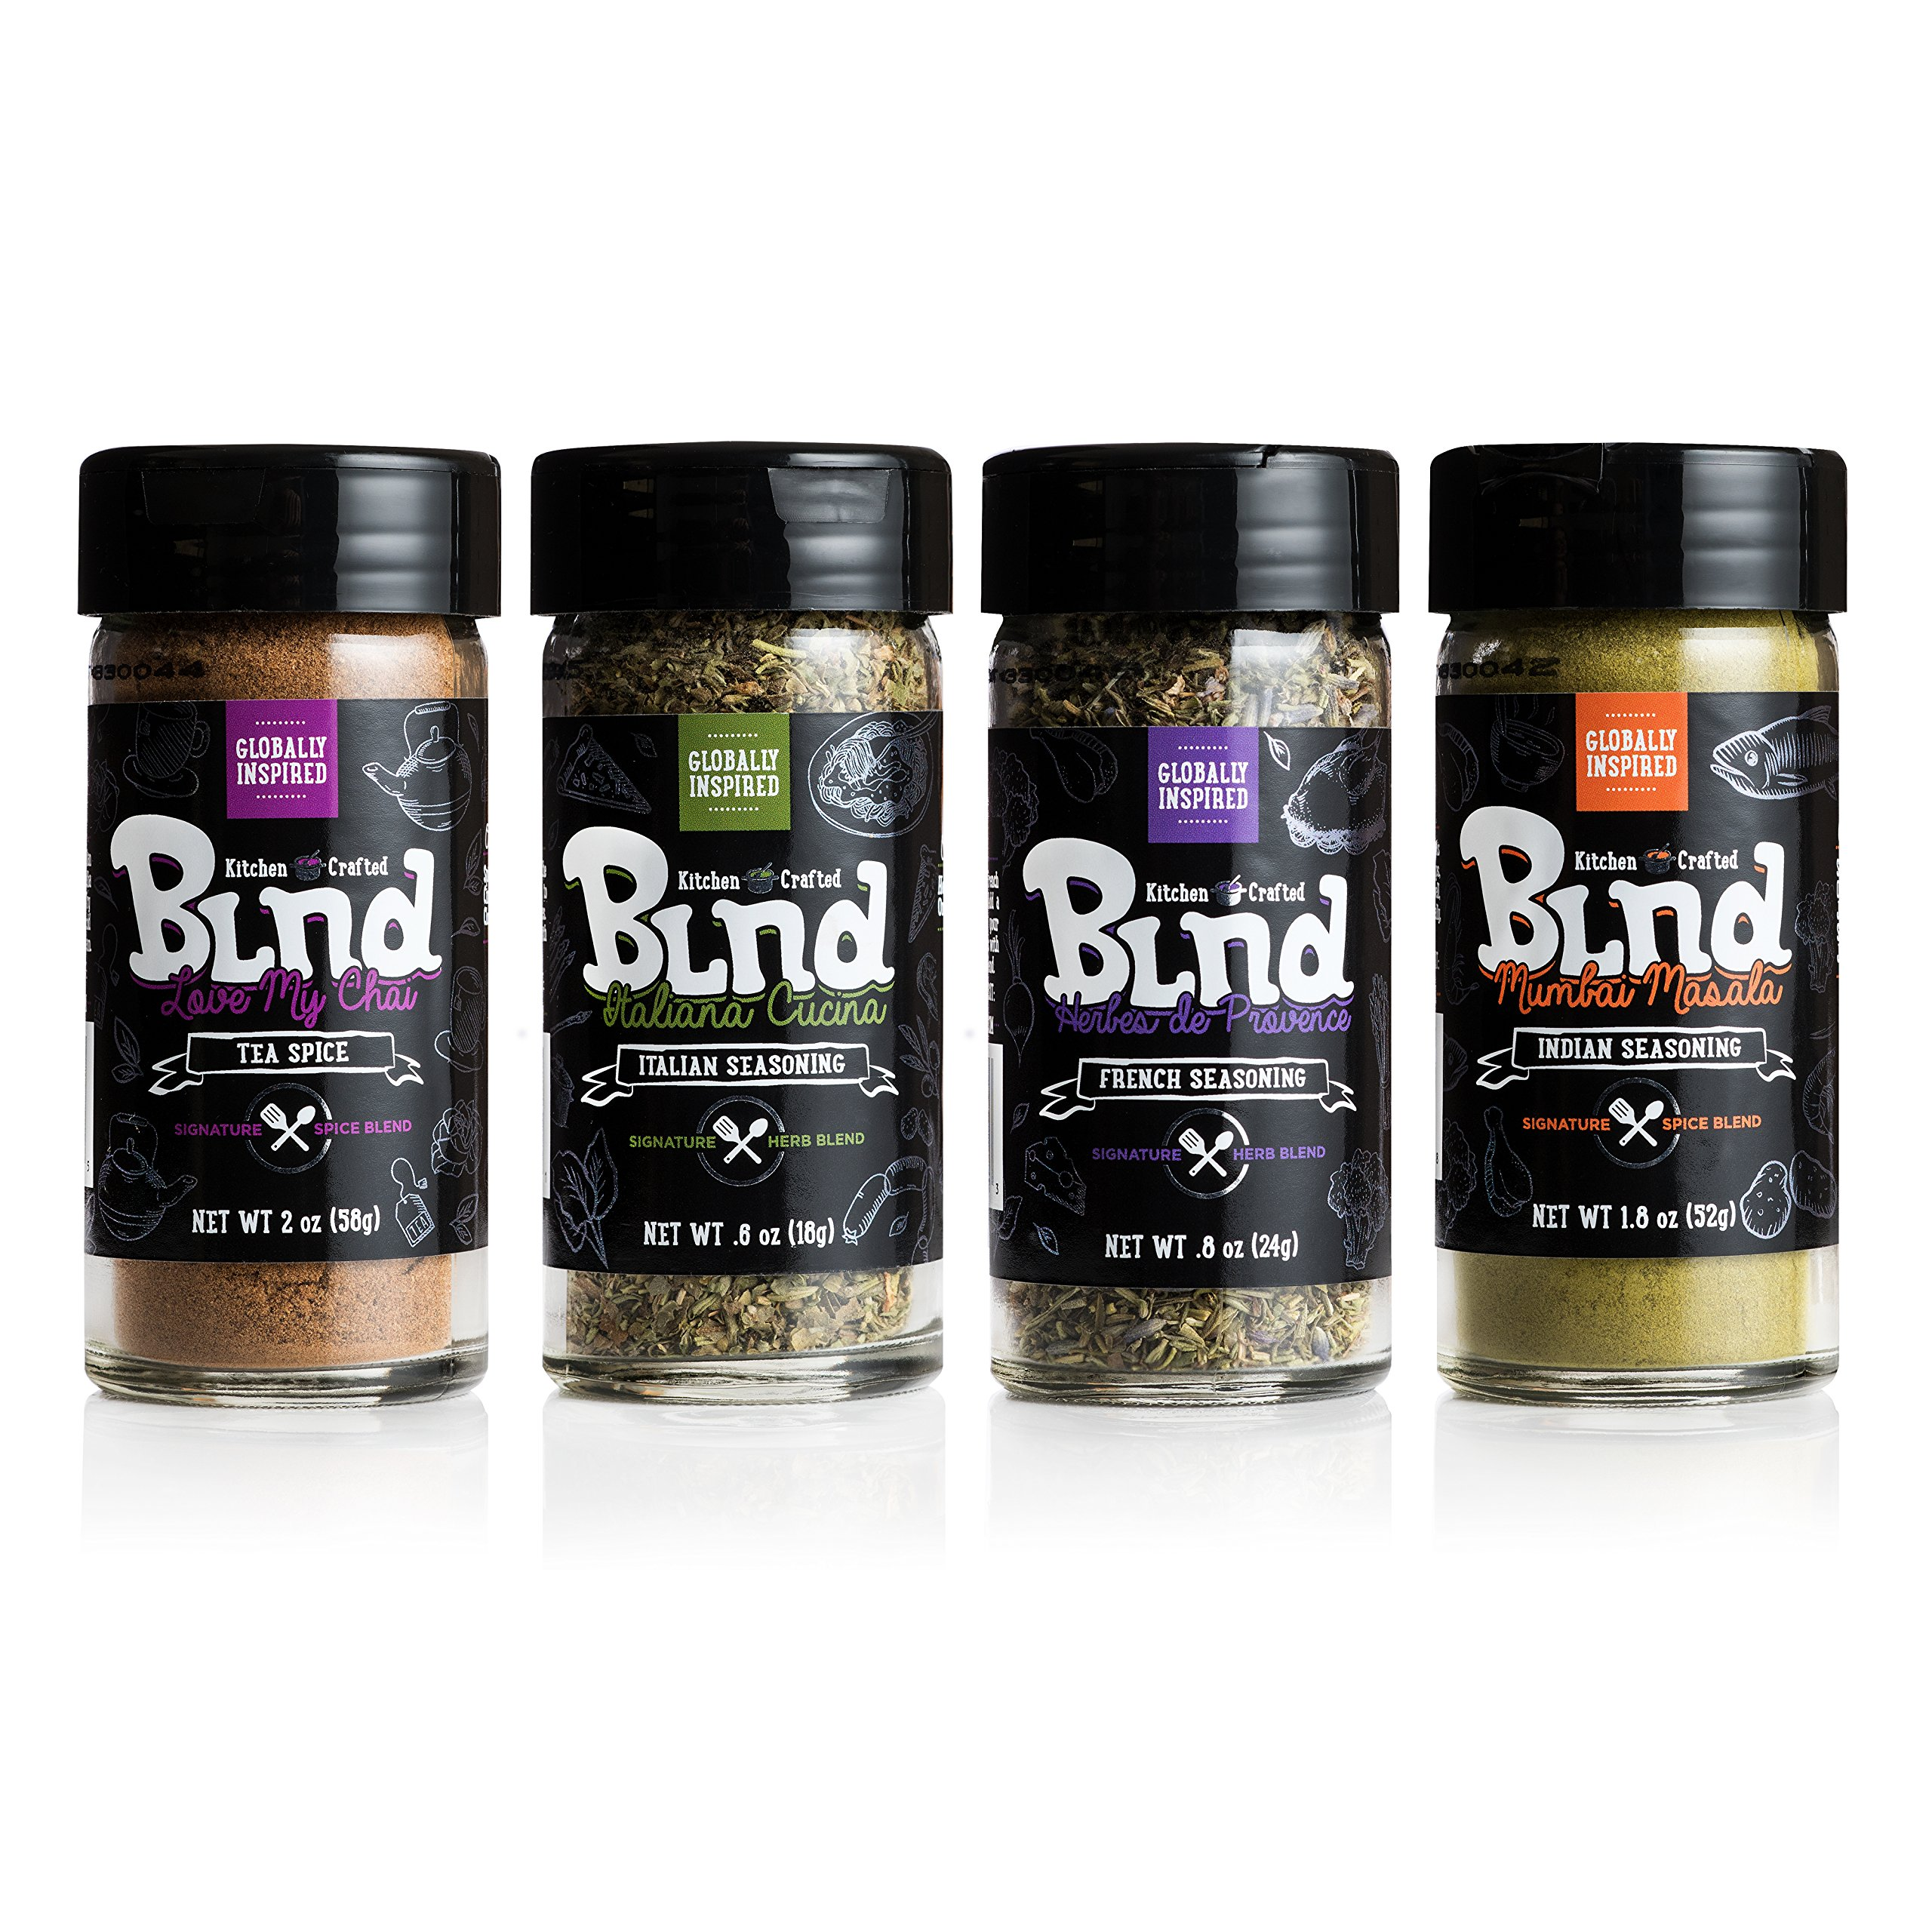 Kitchen Crafted Blnd 100% Natural Non-GMO Savor Your Flavor Spice Combo Pack, Gluten Free, Pack of 4